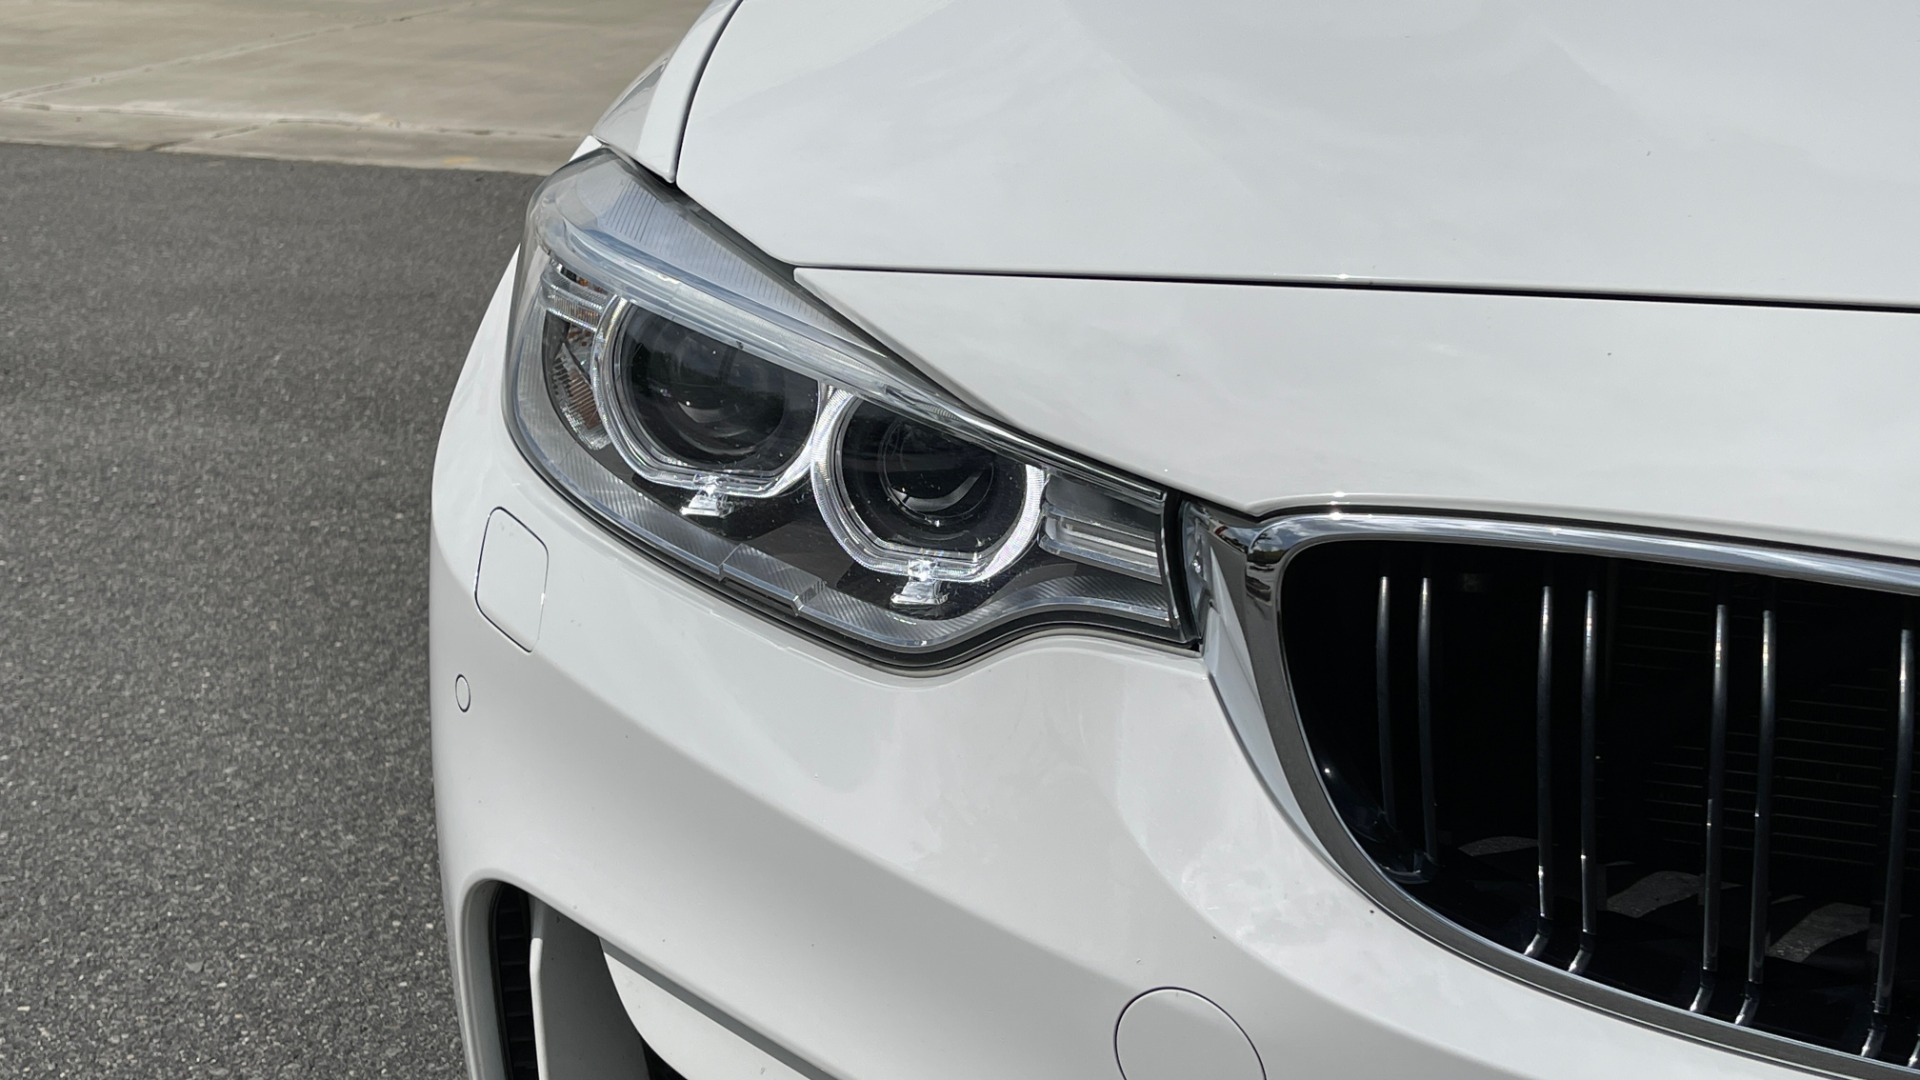 Used 2016 BMW M4 CONVERTIBLE 3.0L / 7-SPD AUTO / EXECUTIVE / ADAPT M SUSP / REARVIEW for sale $53,999 at Formula Imports in Charlotte NC 28227 25